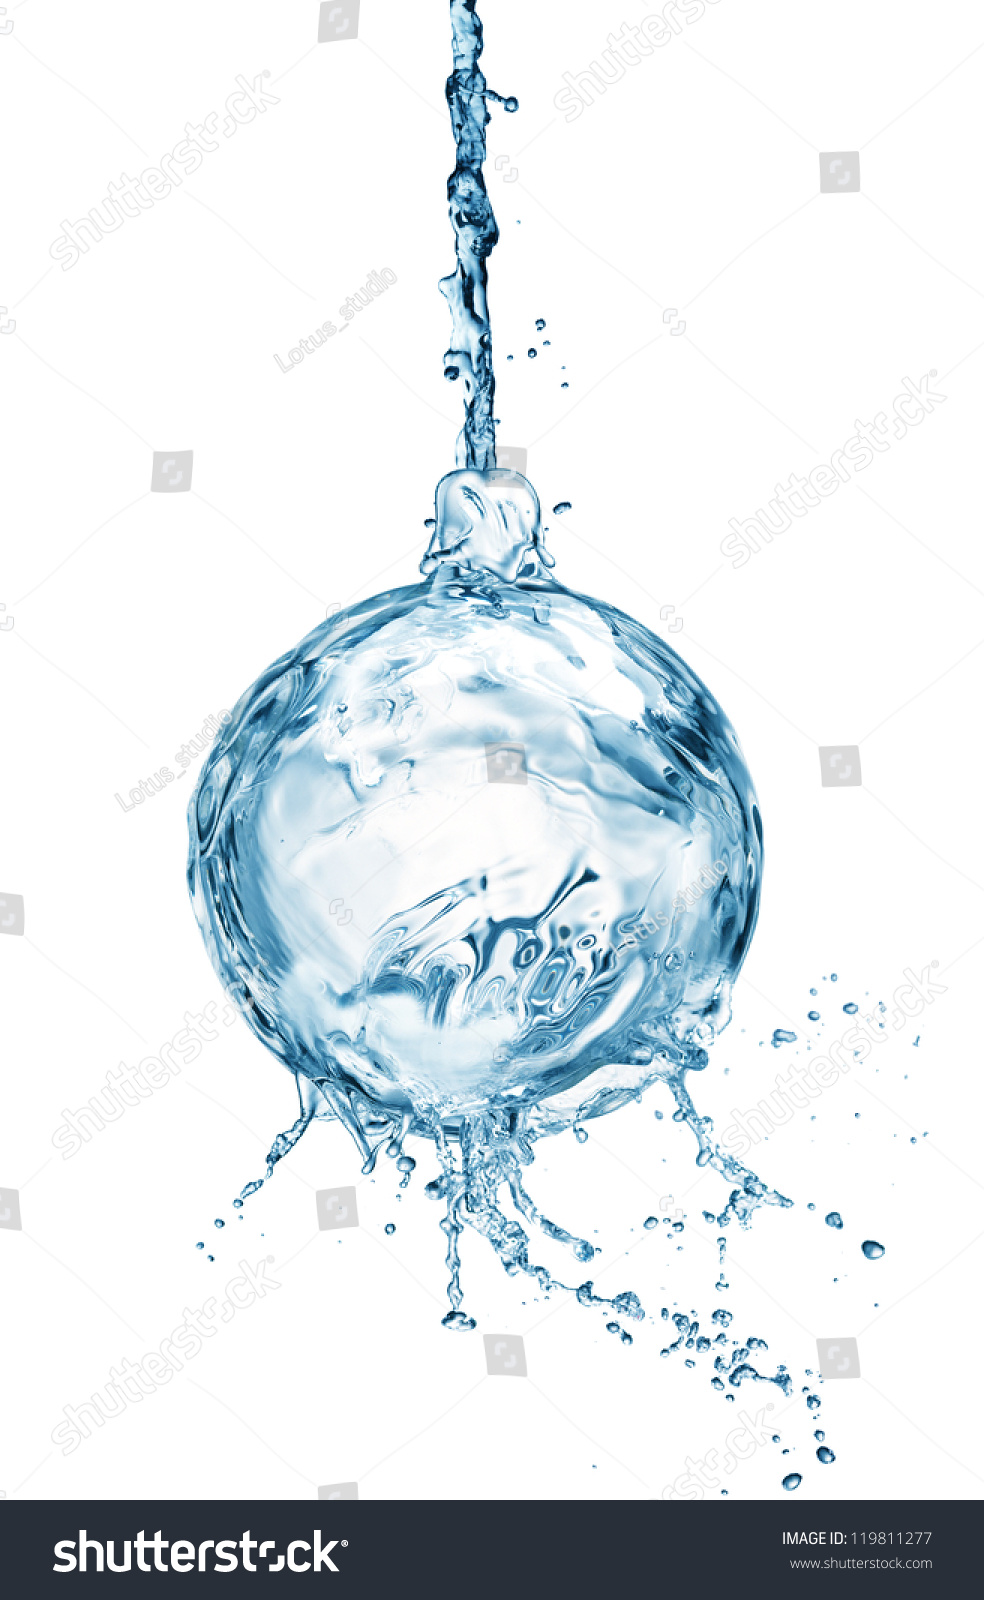 Christmas ball from water splash with bubbles isolated on